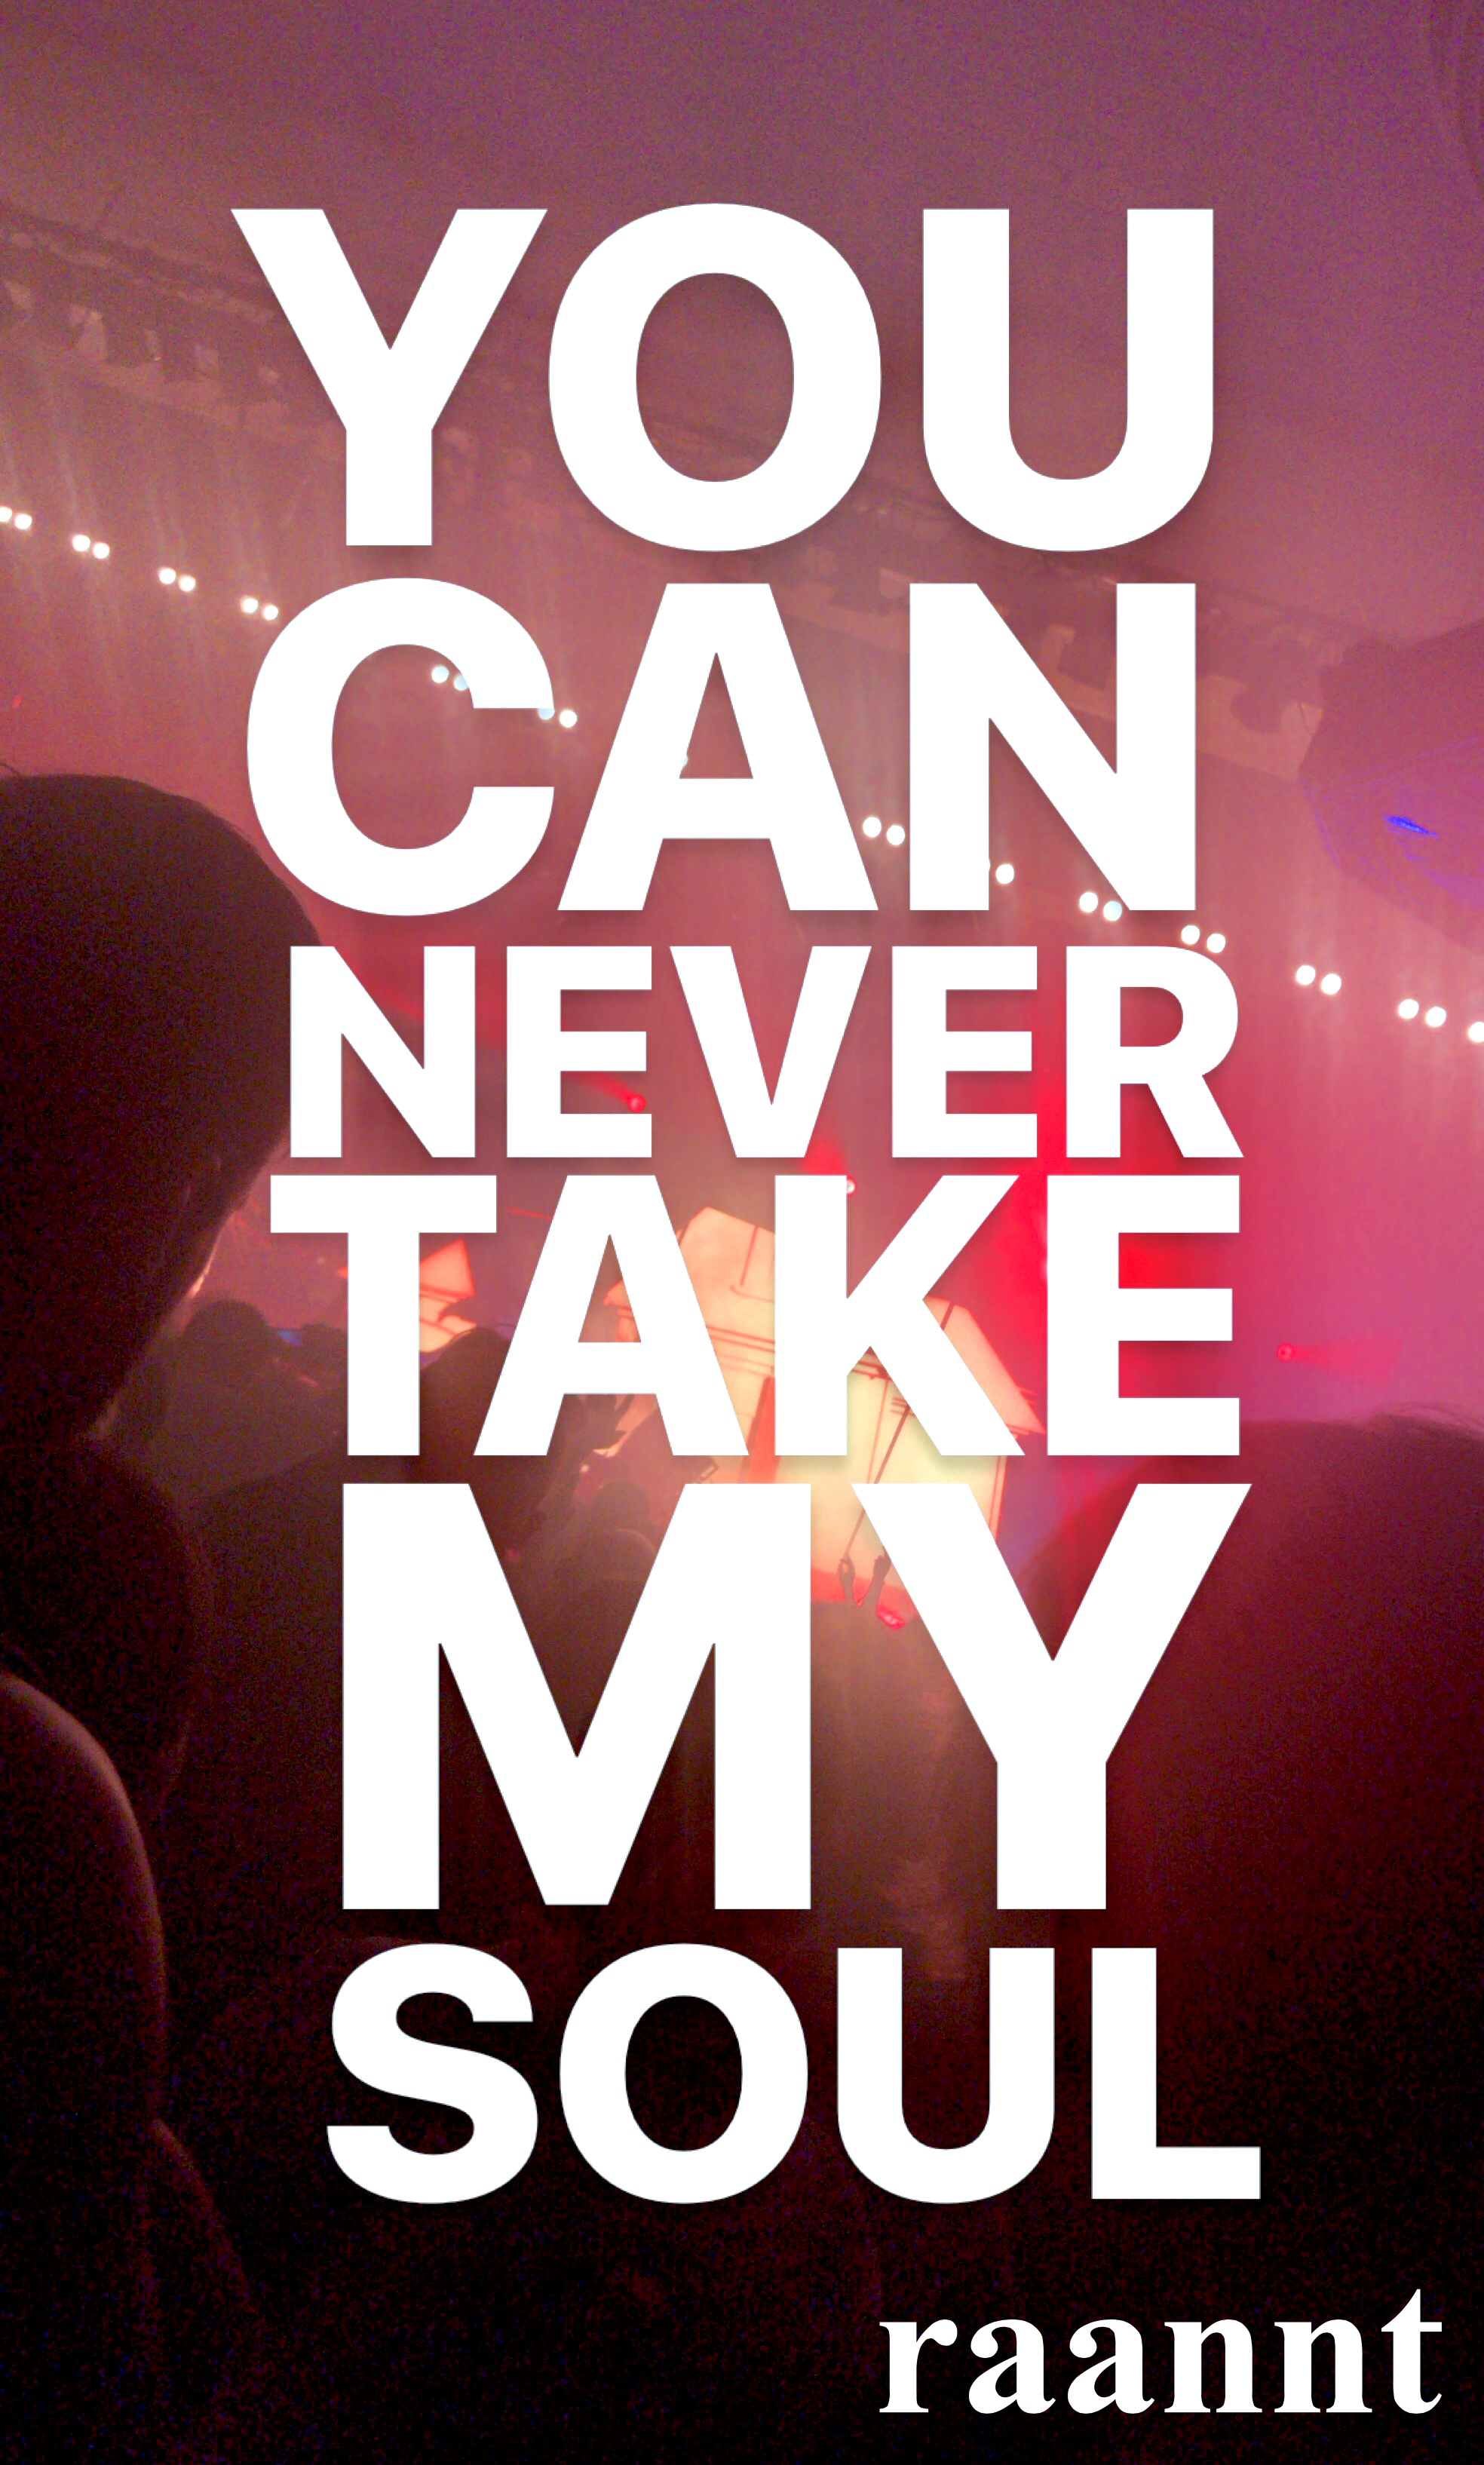 You Can never take my soul by above and beyond on raannt.com